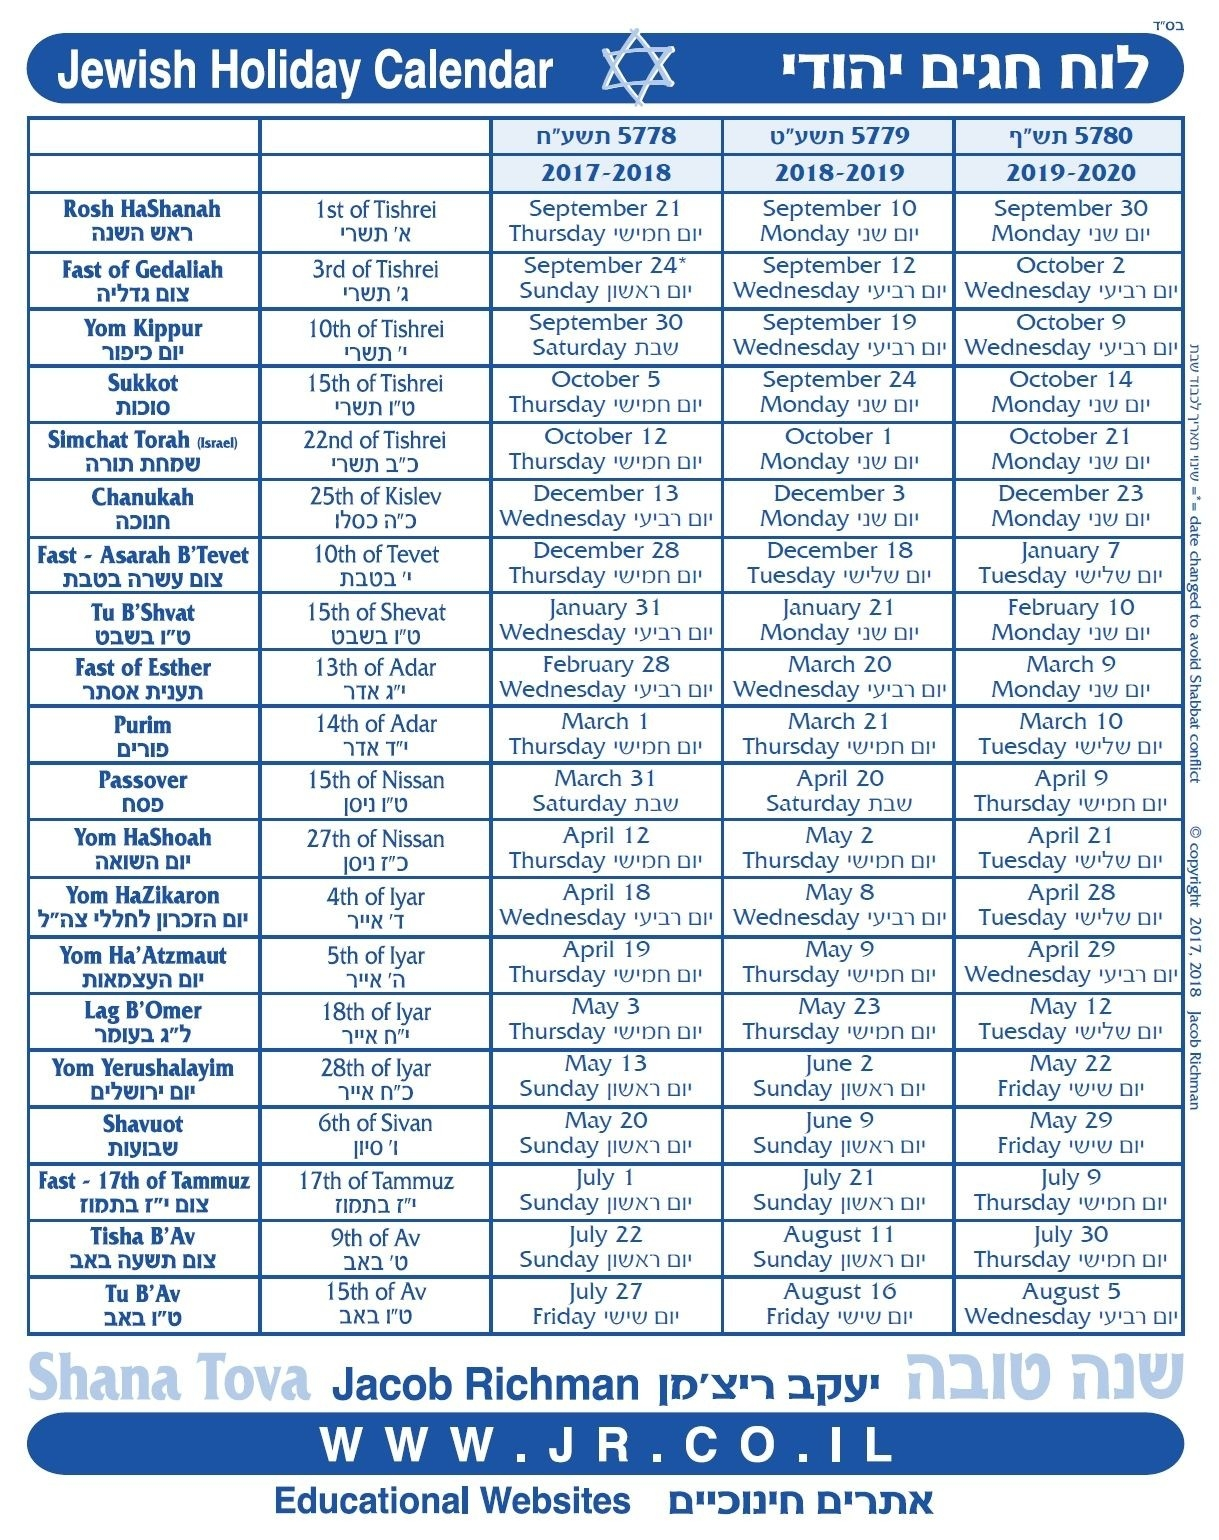 Pin By Jacob Richman On Jedlab Resources | Jewish Holiday-Calendar Of Jewish Holidays October 2020